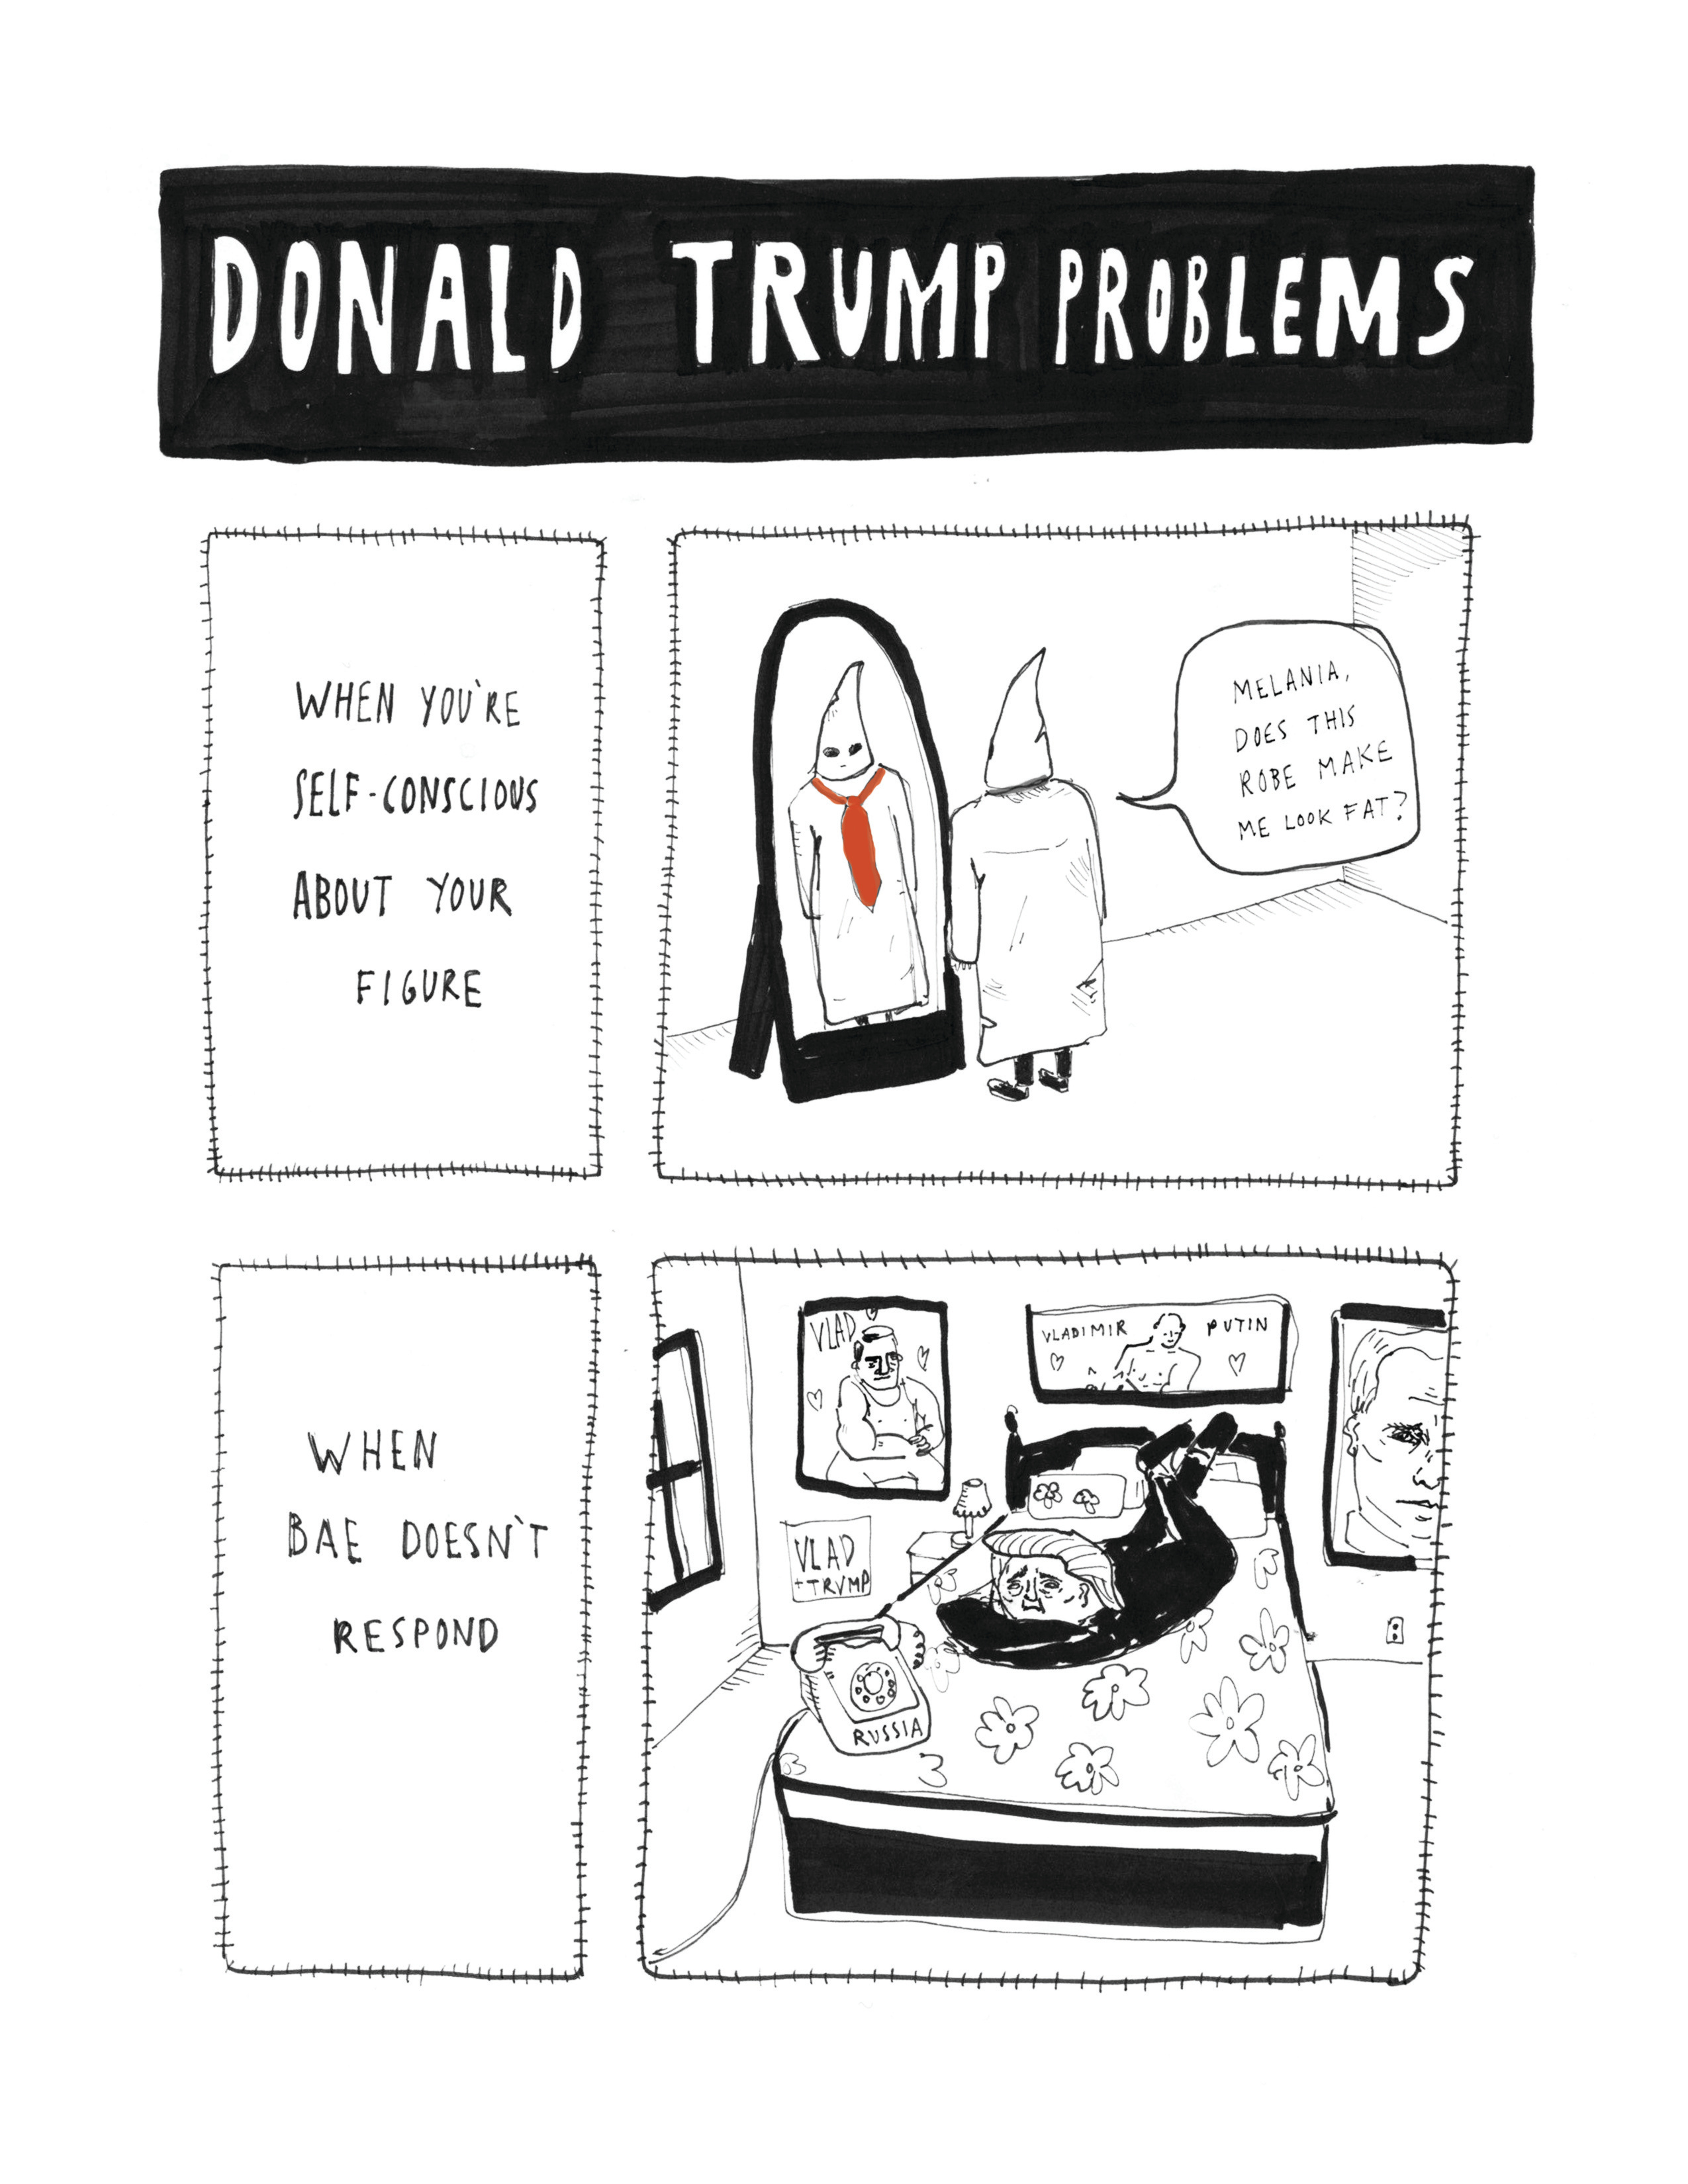 donaldtrumpproblems2